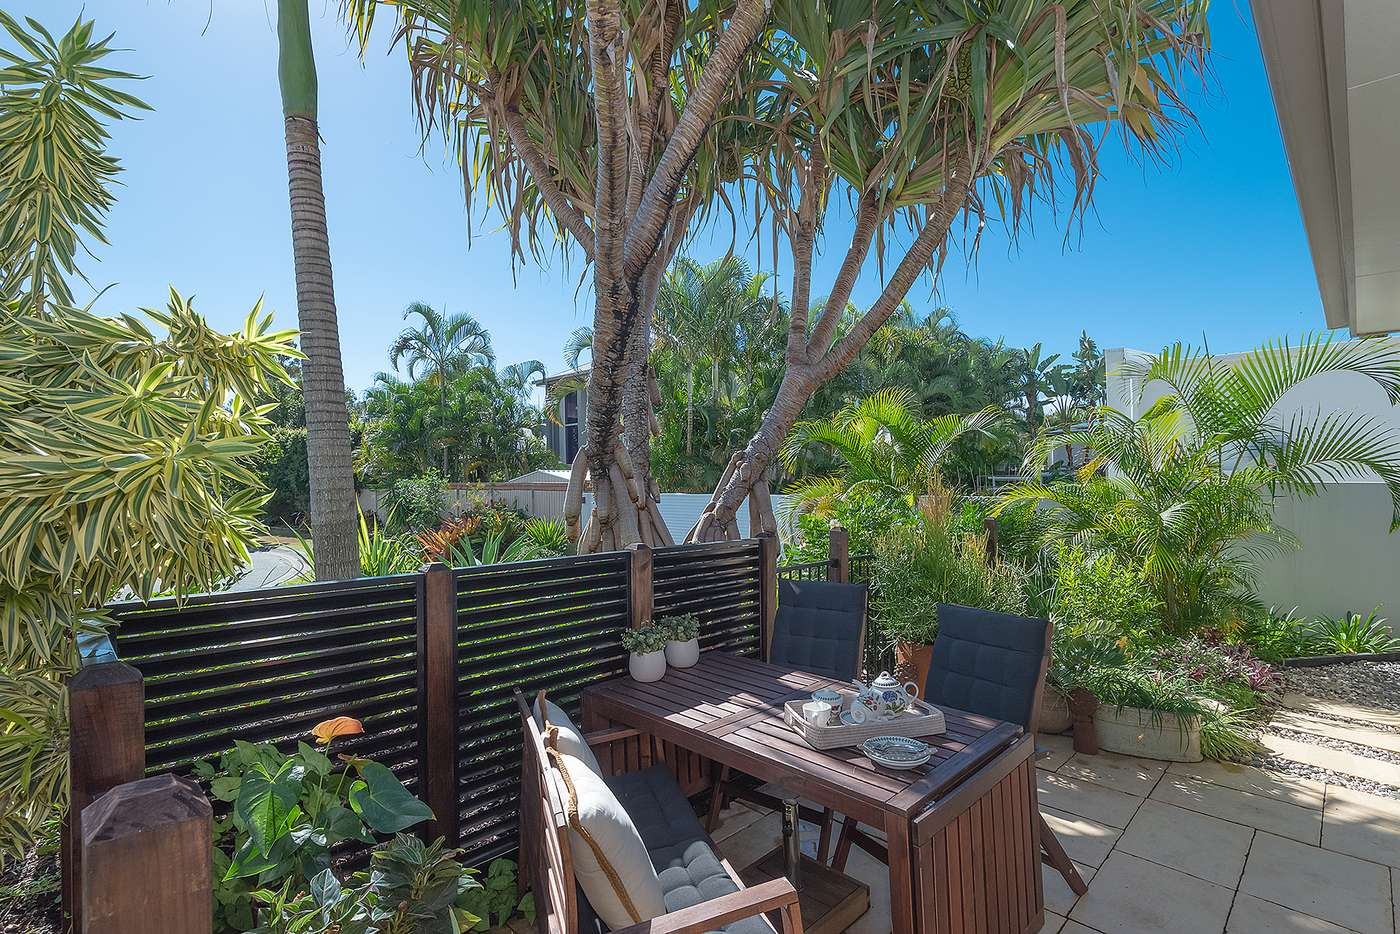 Main view of Homely house listing, 27 Moorings Cct, Twin Waters QLD 4564